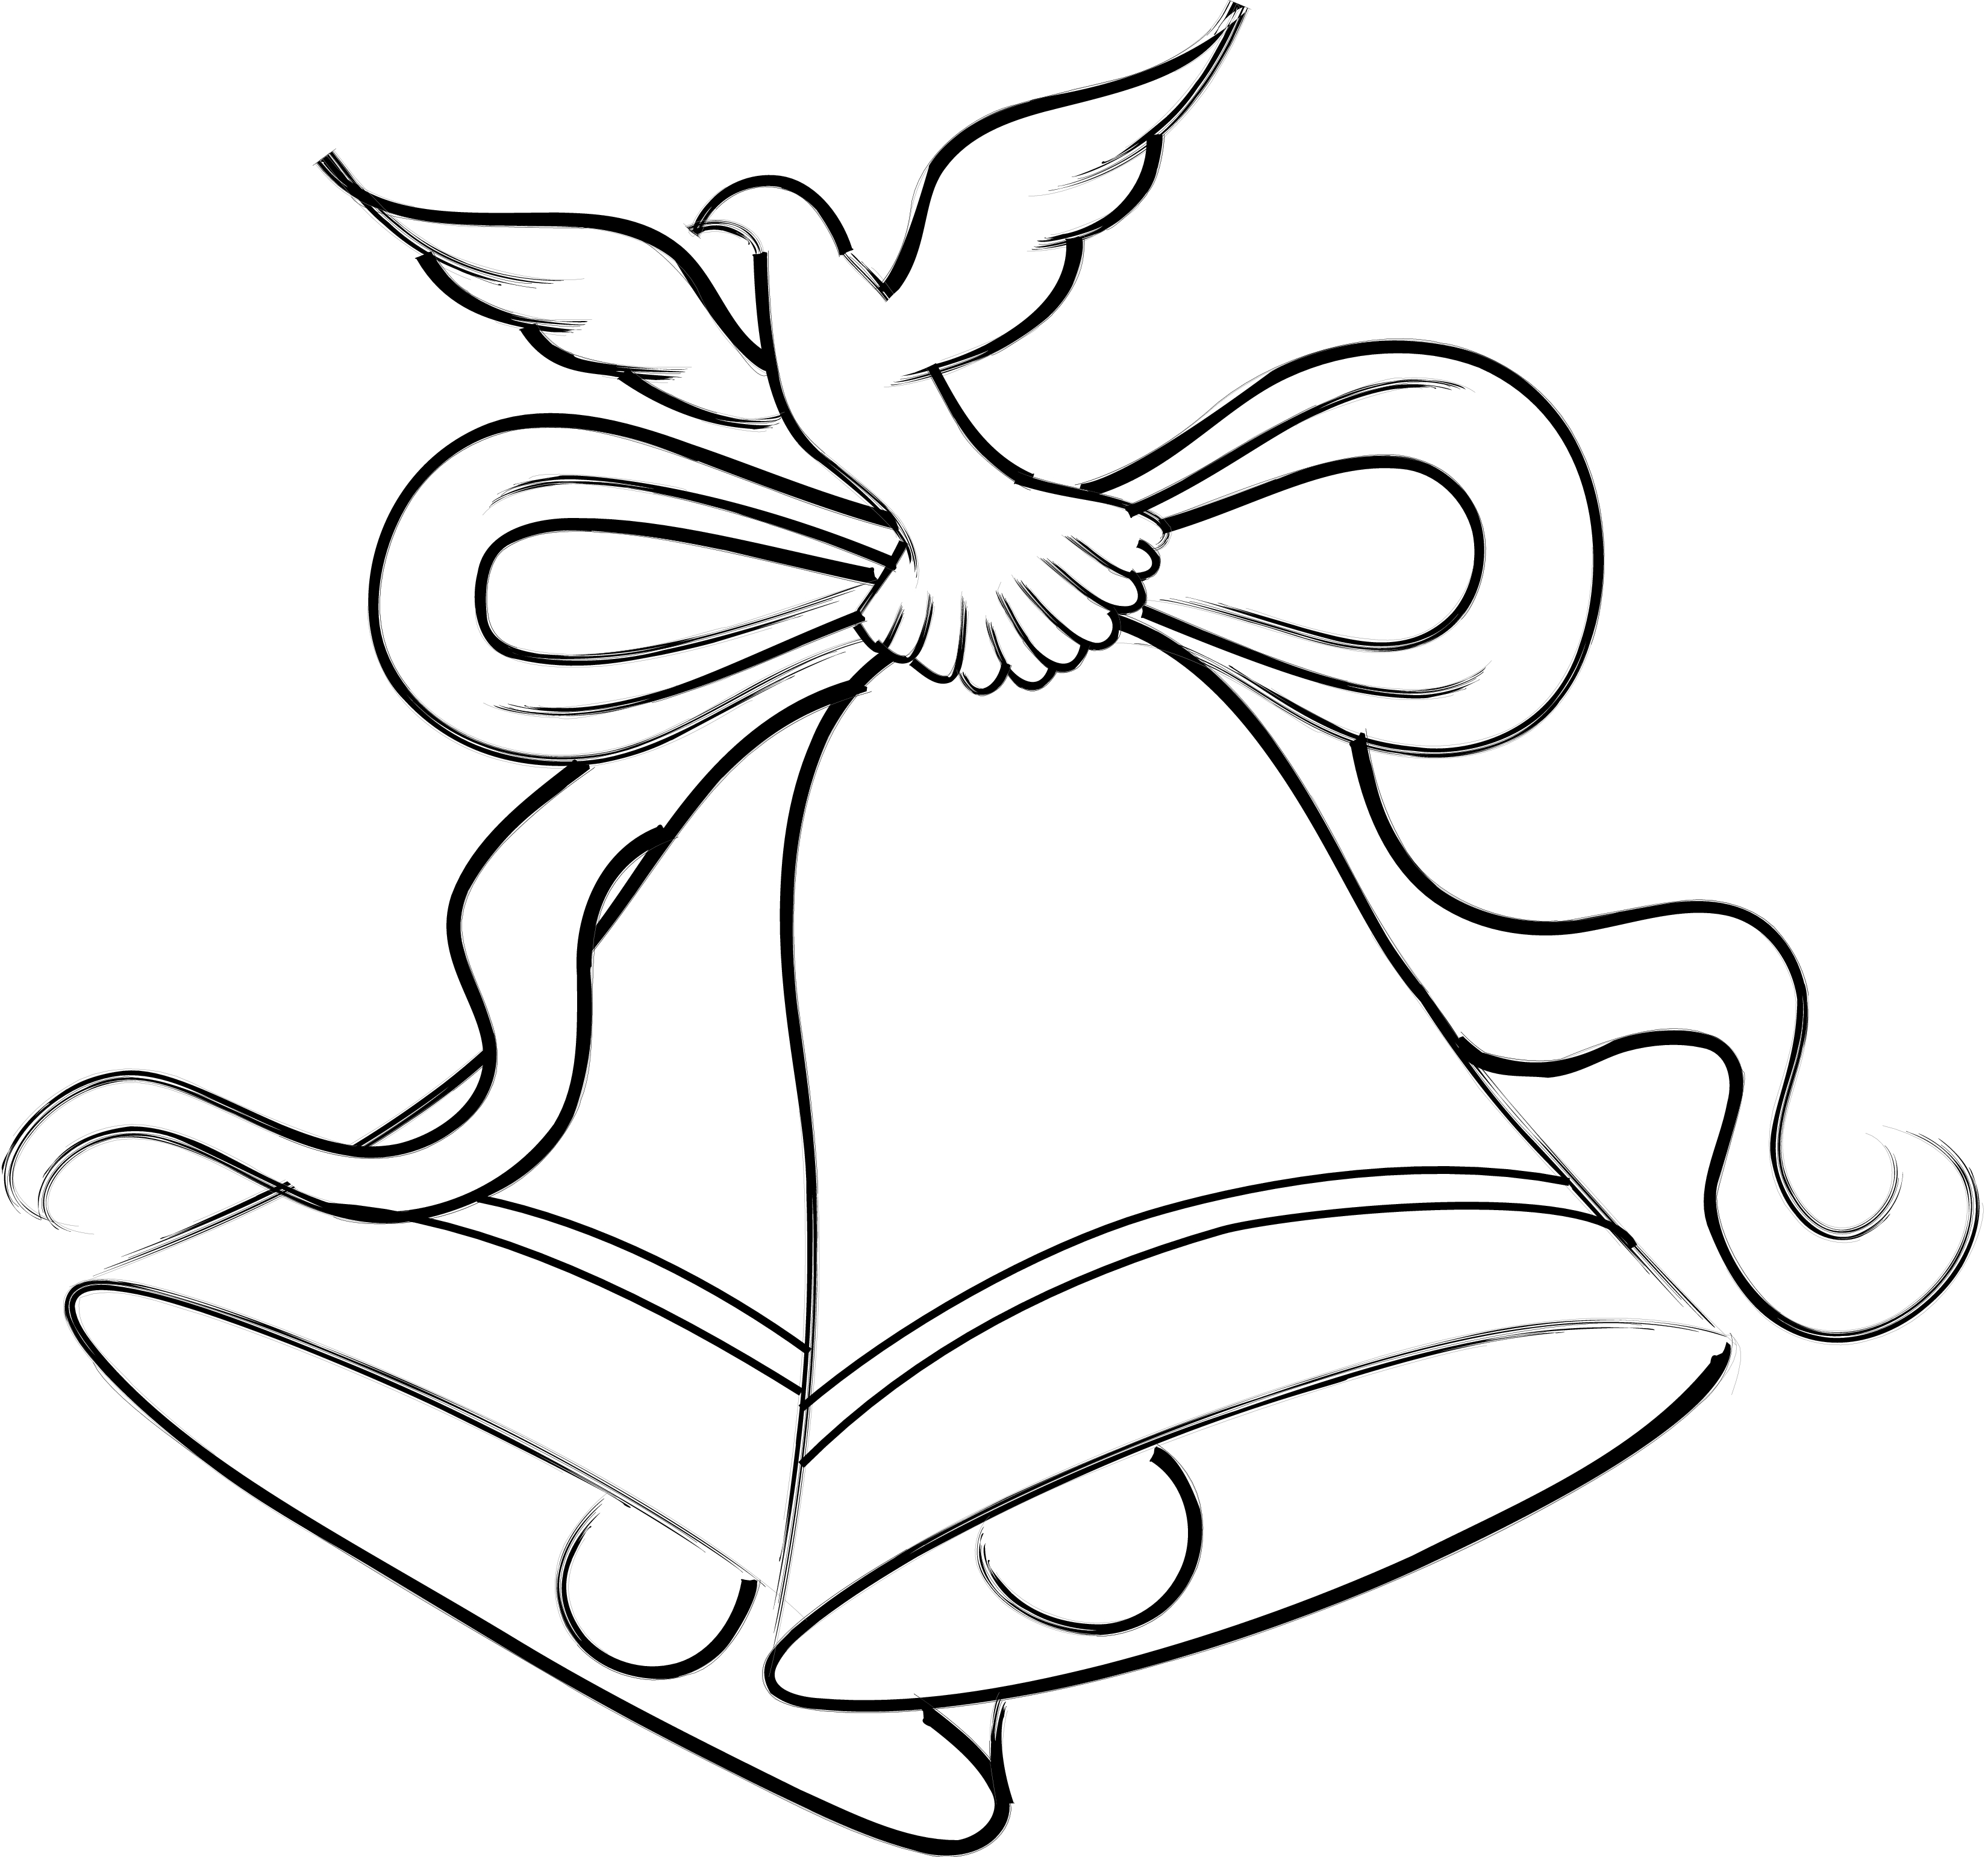 Free Wedding Bells, Download Free Clip Art, Free Clip Art on Clipart.